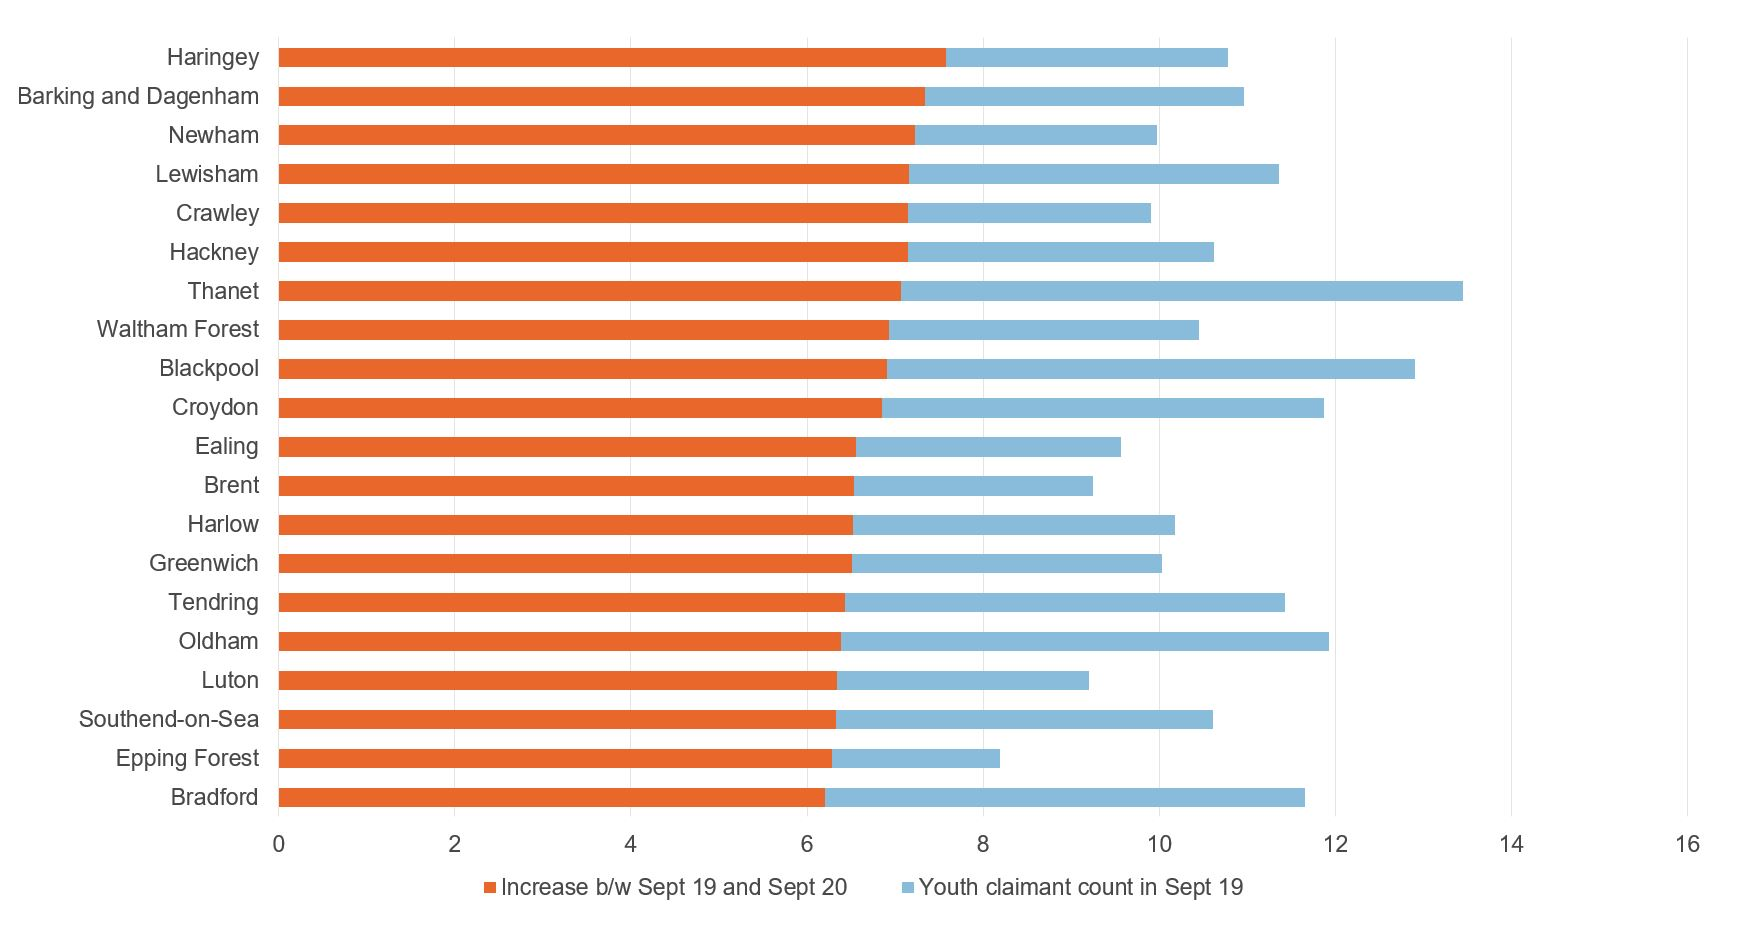 Figure showing Local authority areas with the largest increase in the youth claimant count rate